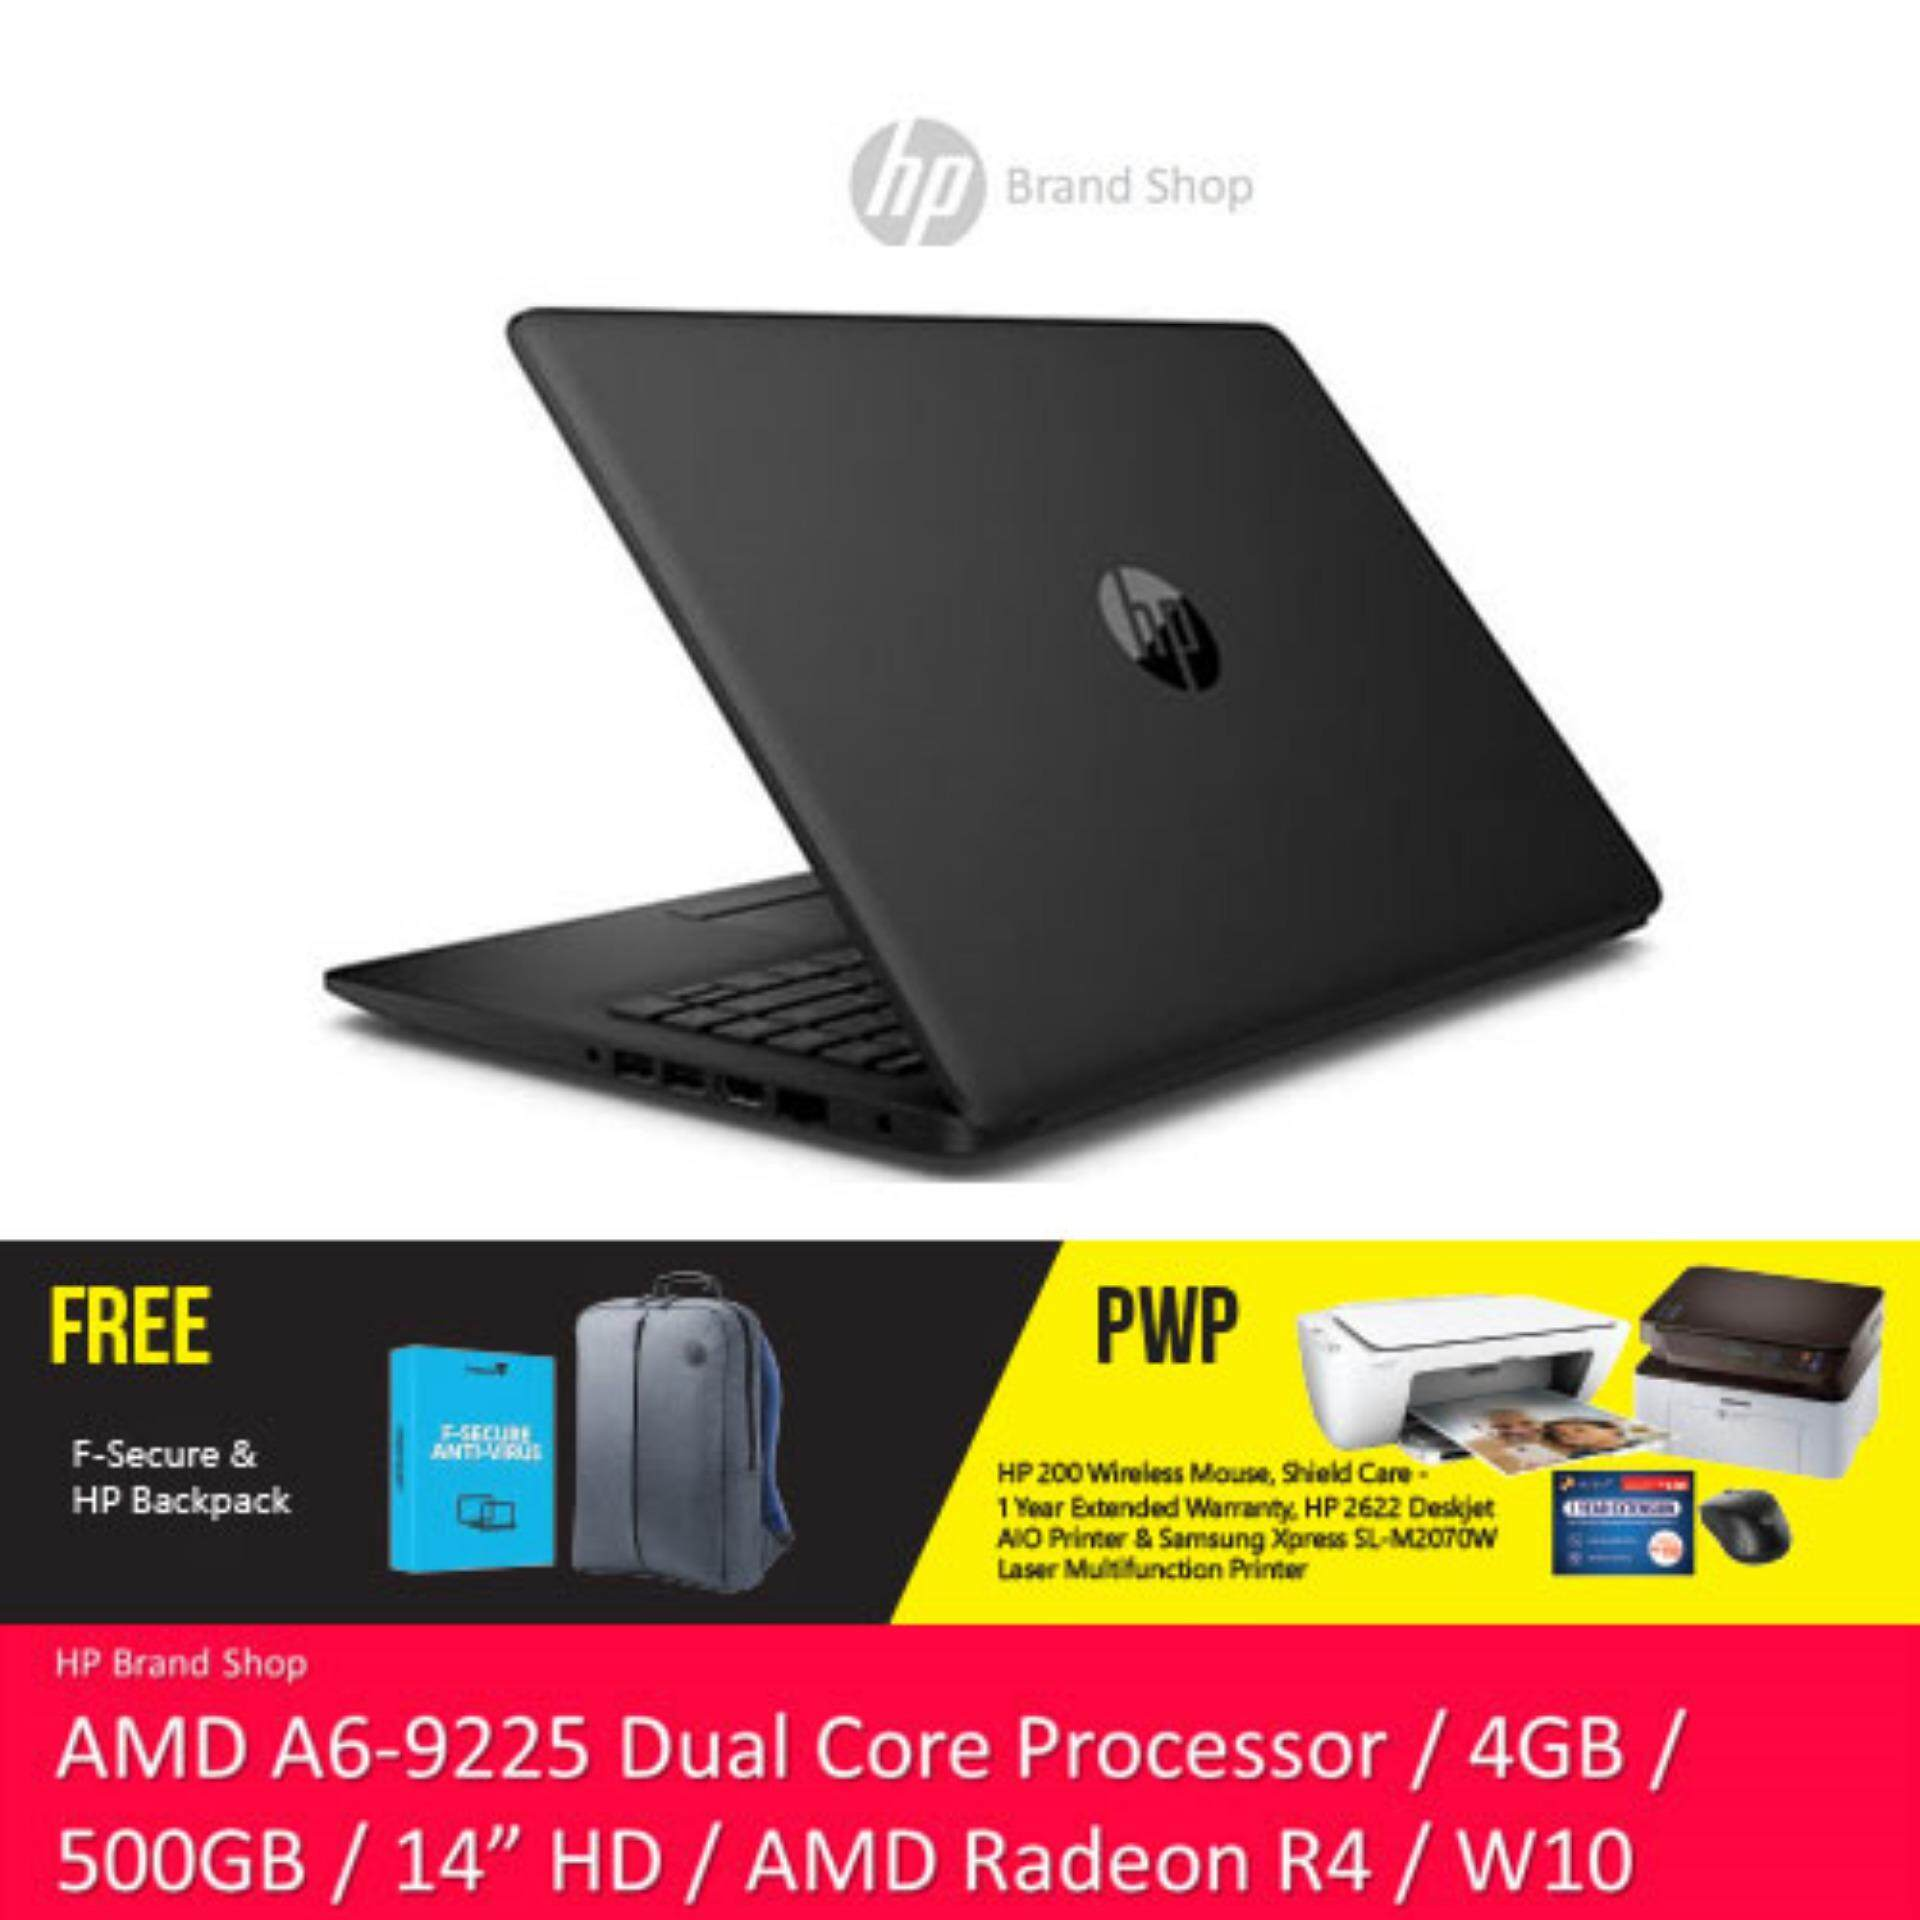 NEW HP 14-CM0087AU / 14-CM0088AU 14 HD Laptop (AMD A6-9225, 500GB, 4GB, AMD Radeon R4, W10) - (Black/Red) [Free HP Backpack + F-Secure 1 Year Client Security] Malaysia